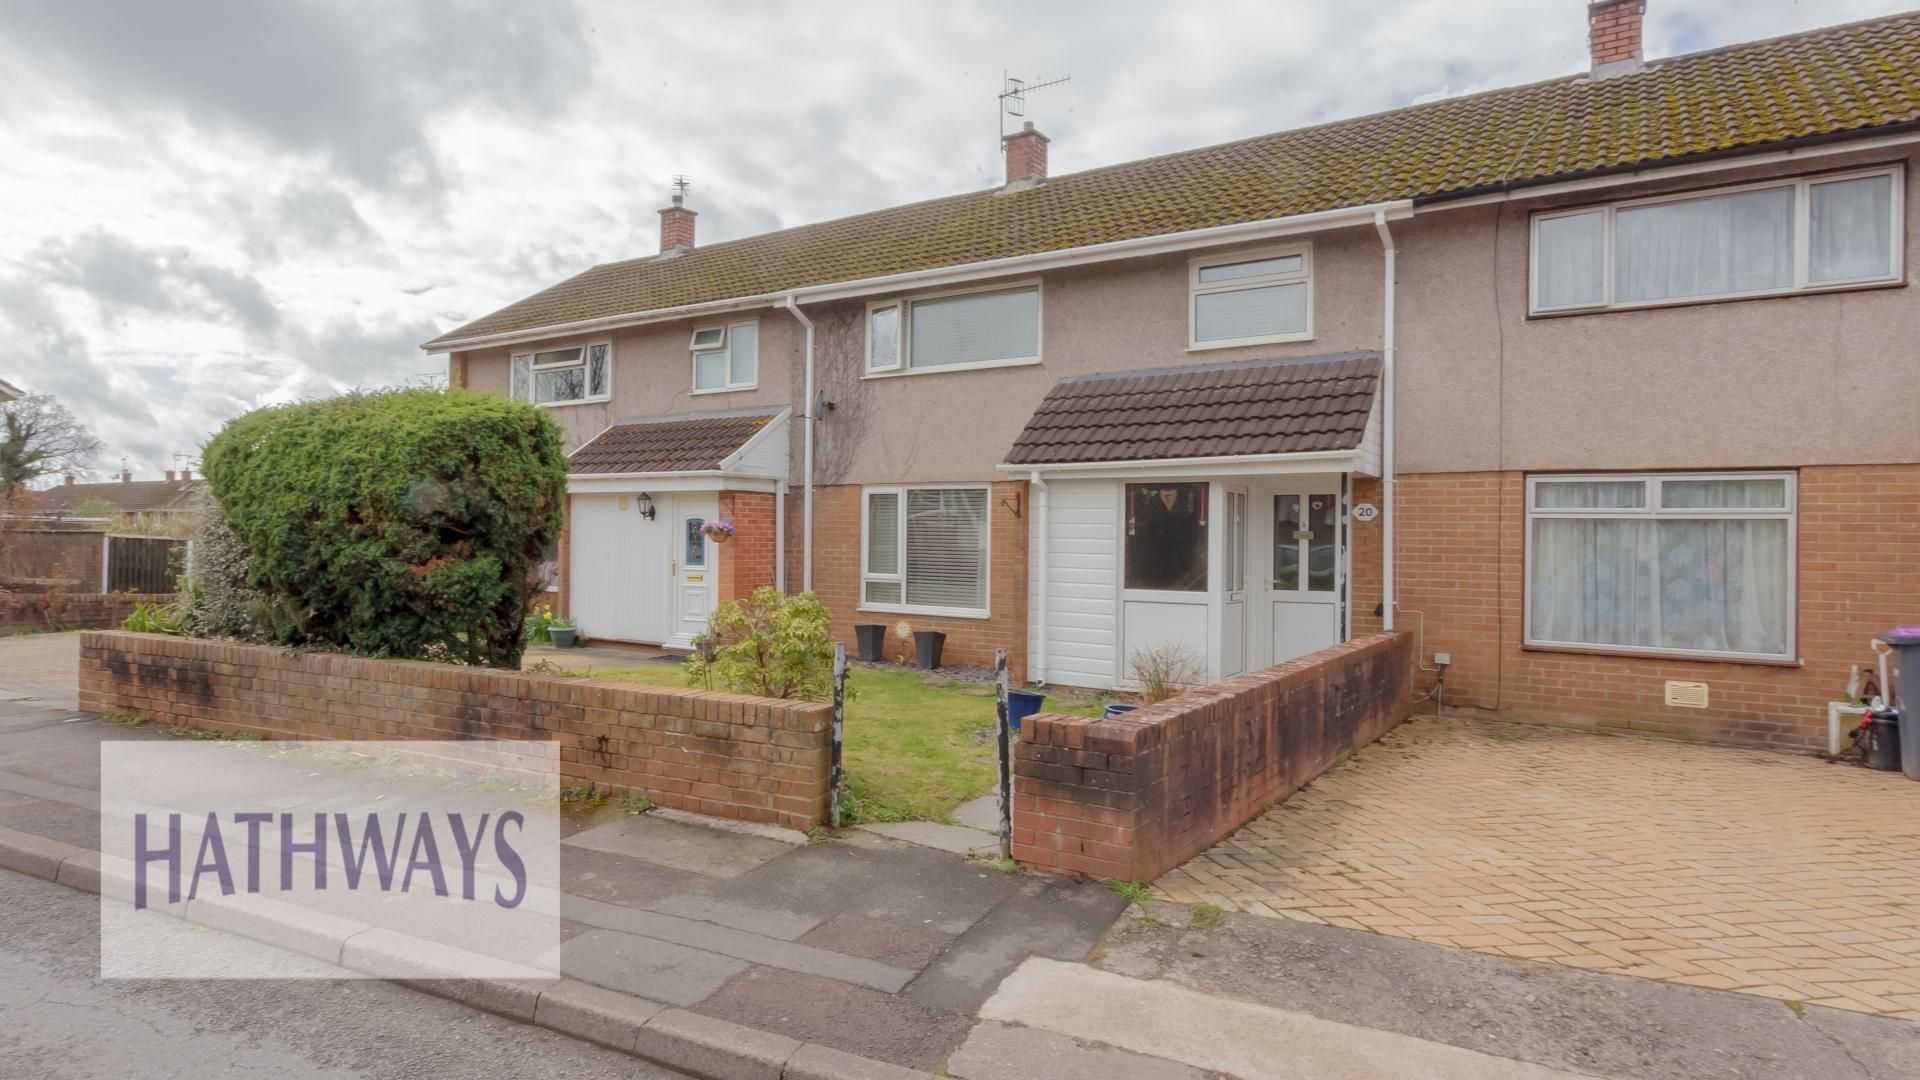 3 bed house for sale in Liswerry Drive, NP44